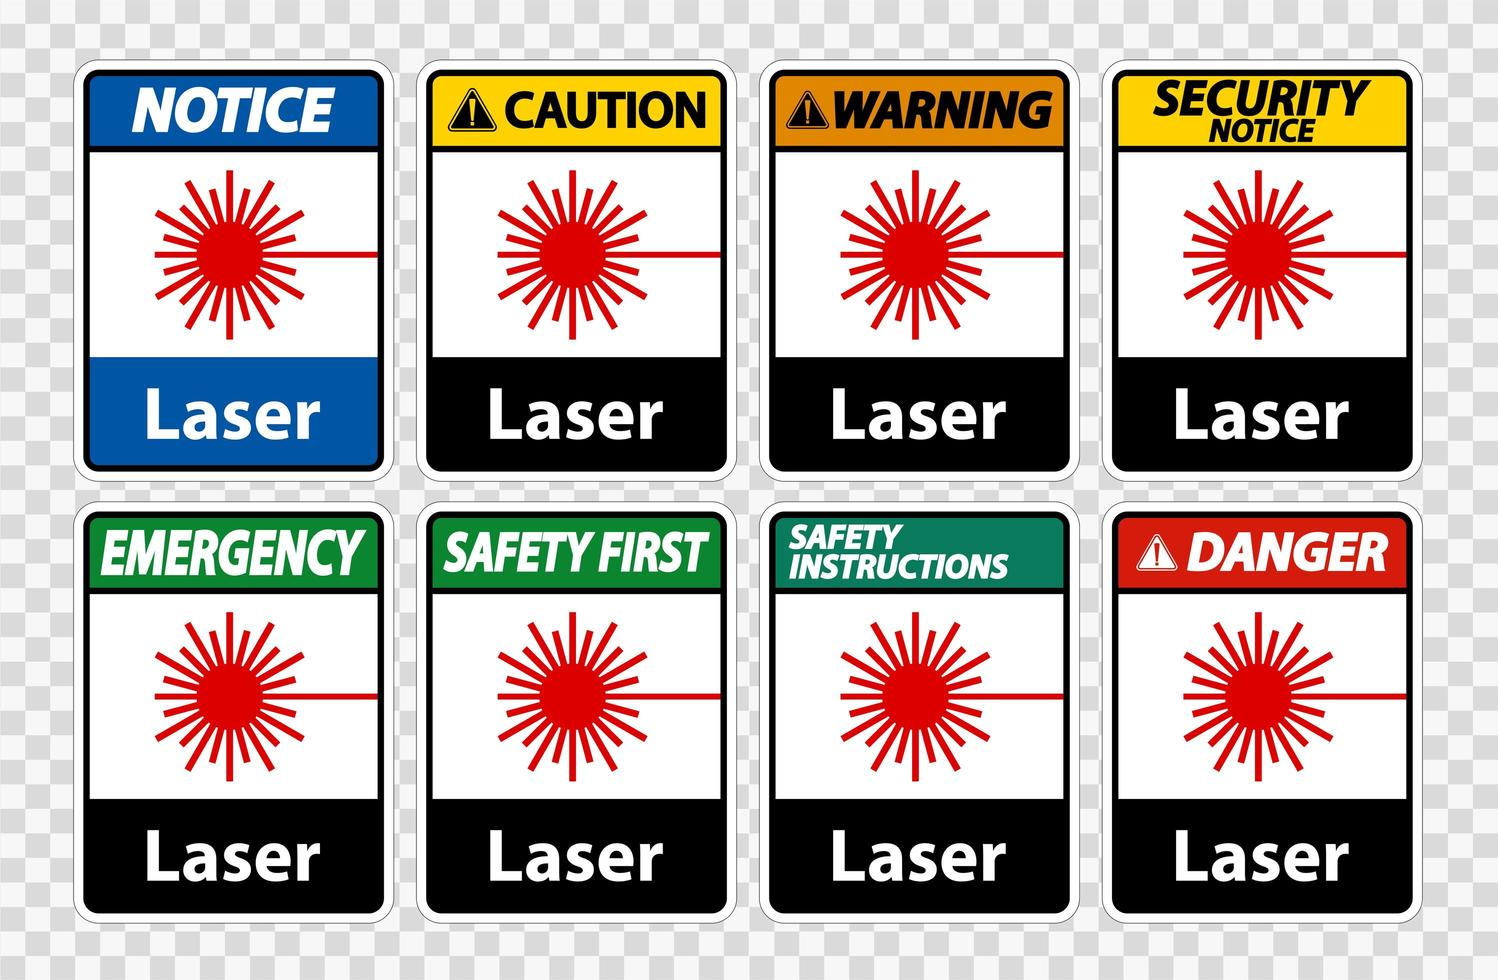 Laser Safety Cliparts - Cliparts Zone